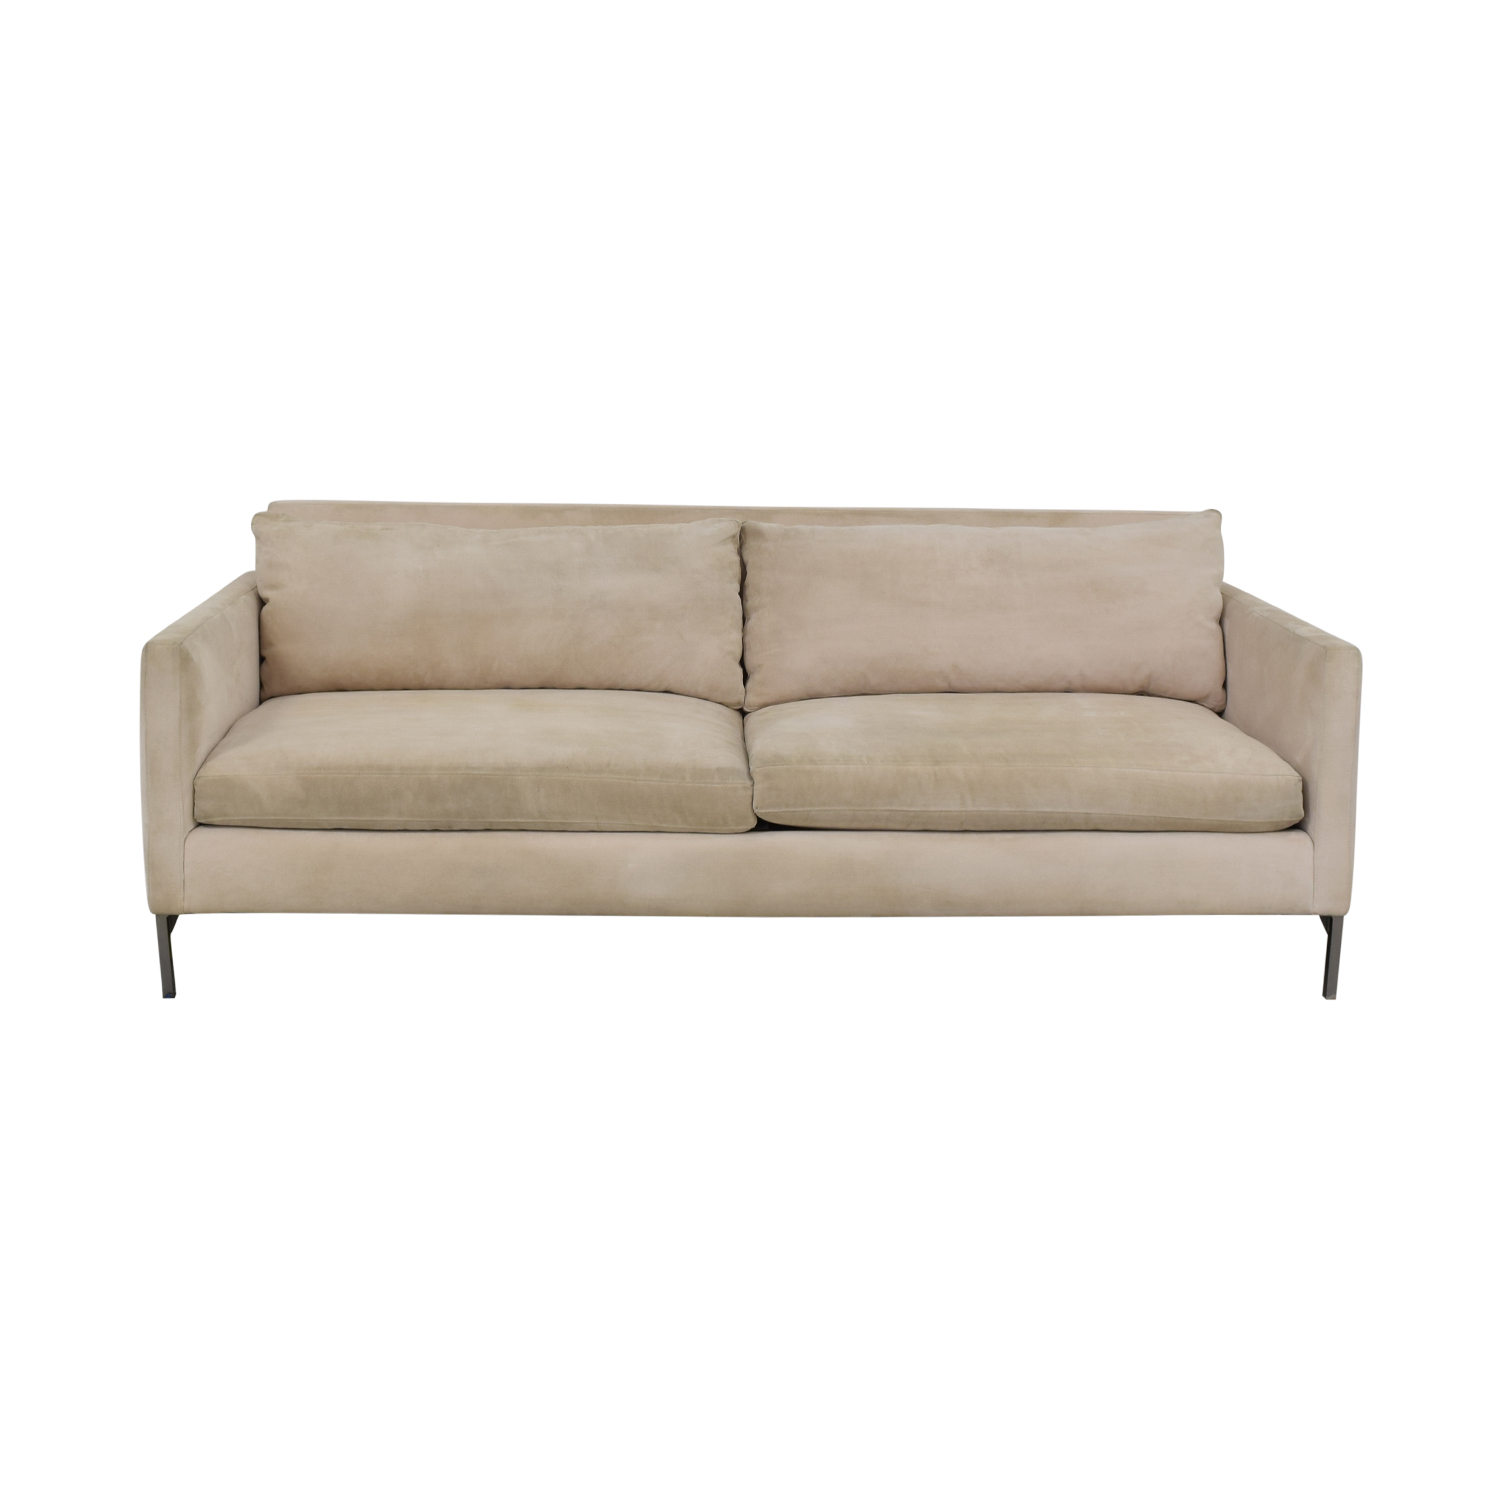 ABC Carpet & Home Cobble Hill Nolita Beige Sofa / Sofas